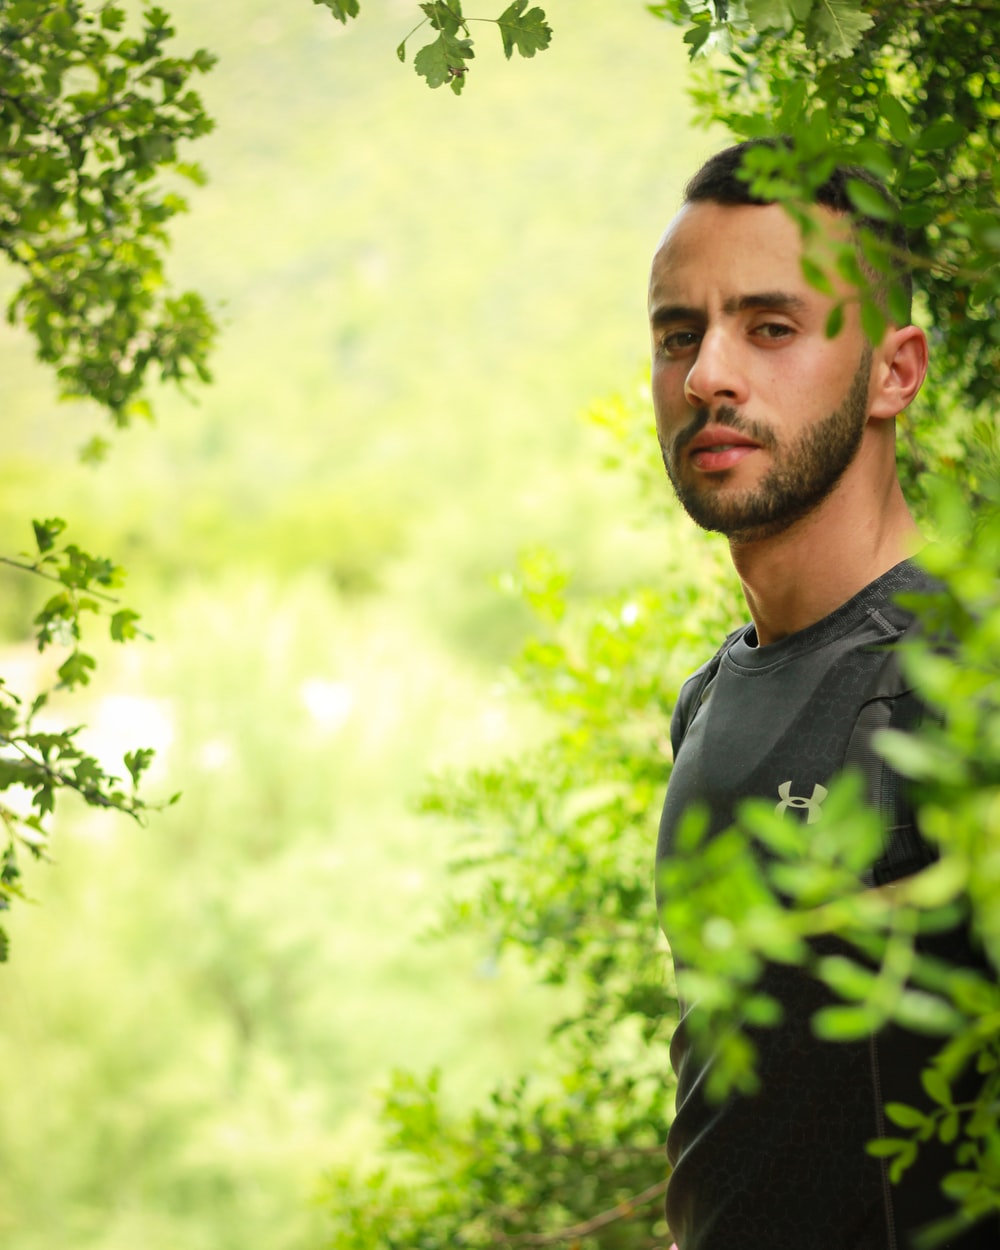 man in black and green polo shirt standing near green tree during daytime